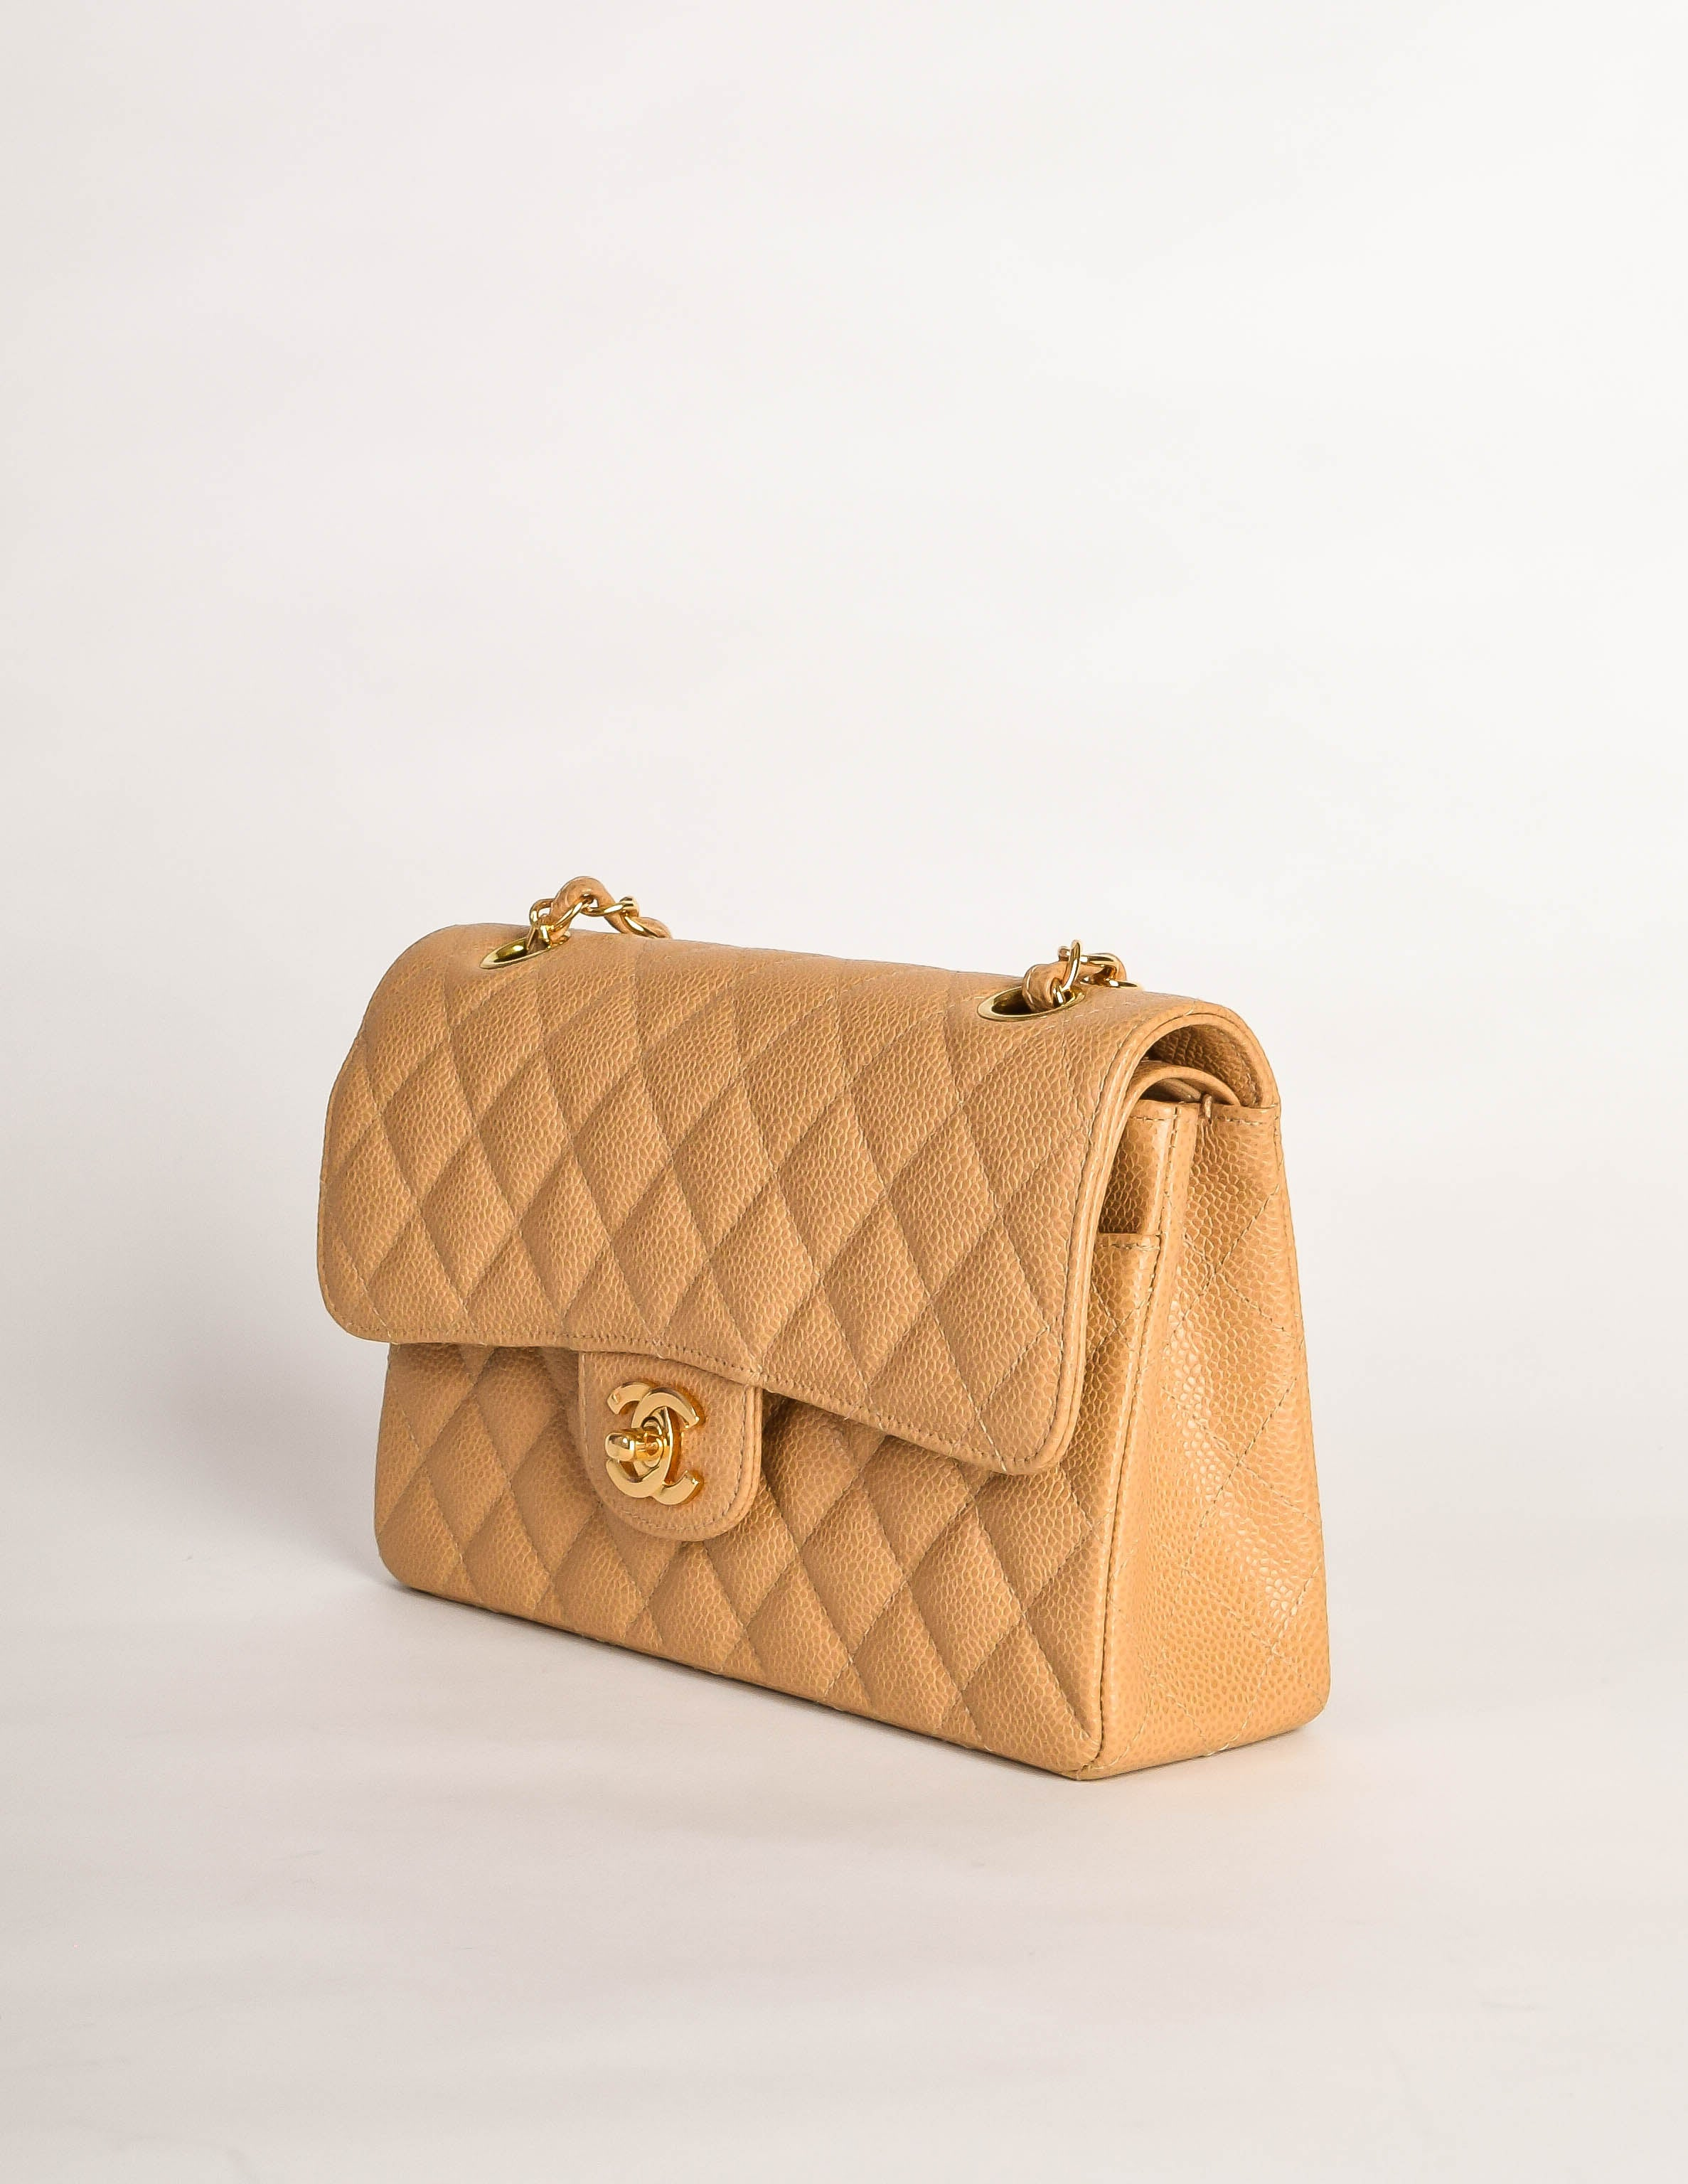 3b2b75defbc0de Chanel Vintage Beige Caviar Quilted 2.55 Small Classic Double Flap Bag